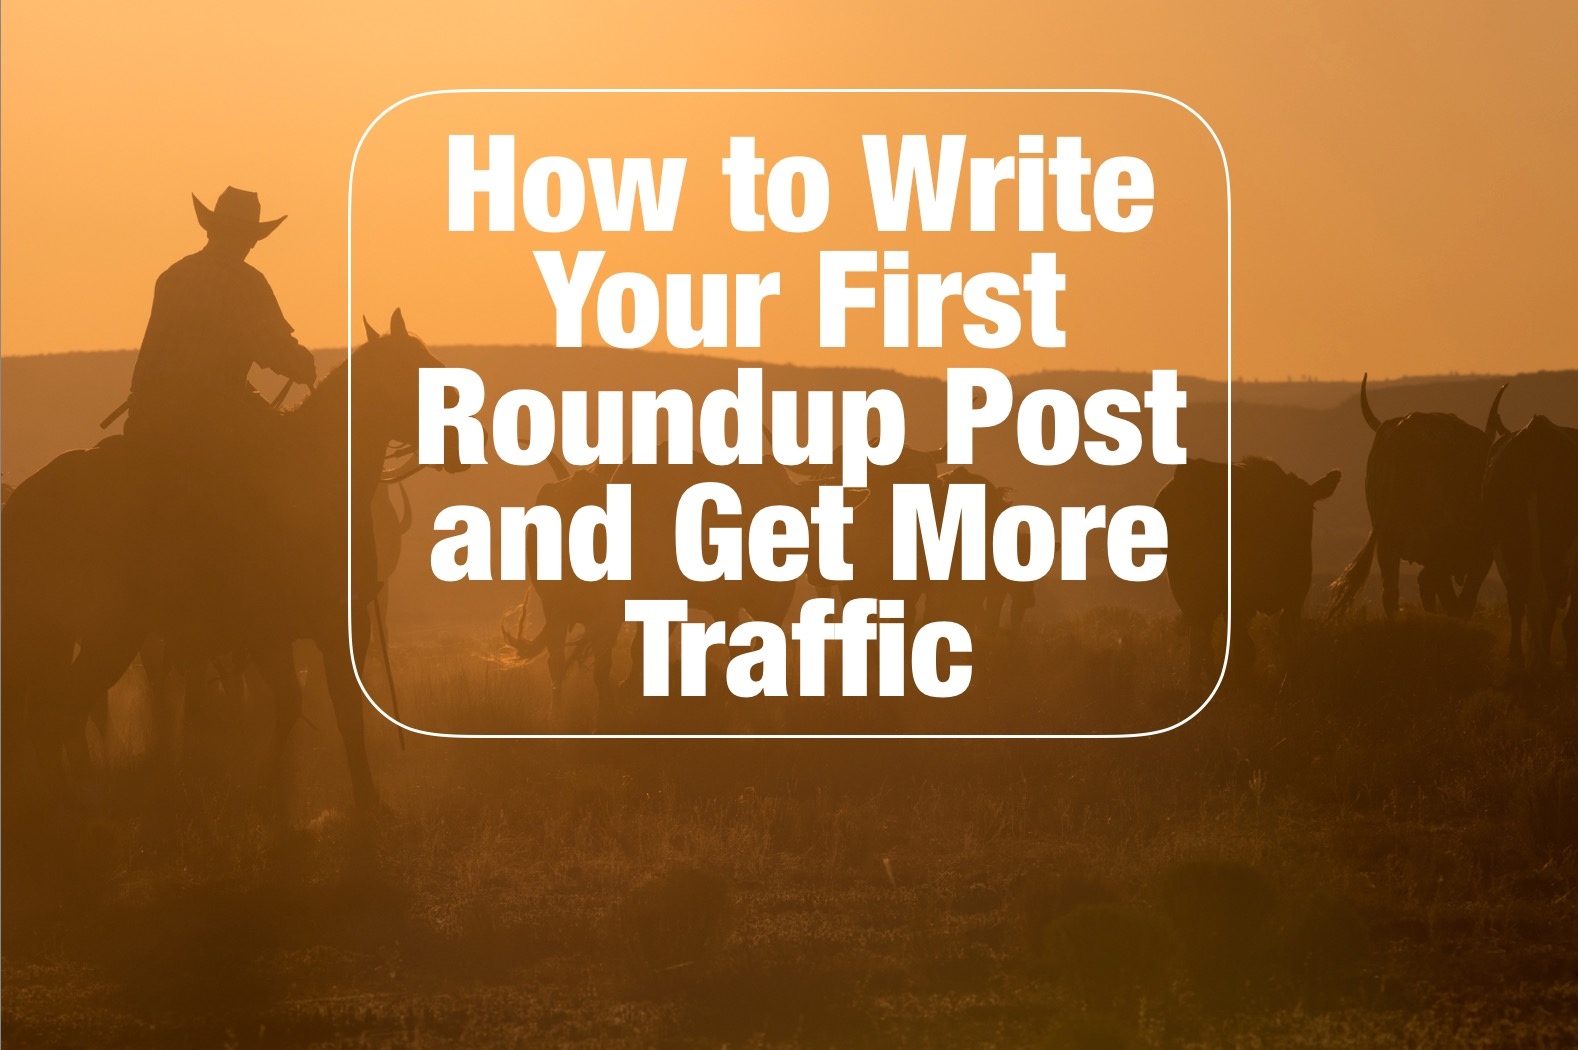 How to Write Your First Roundup Post and get More Traffic